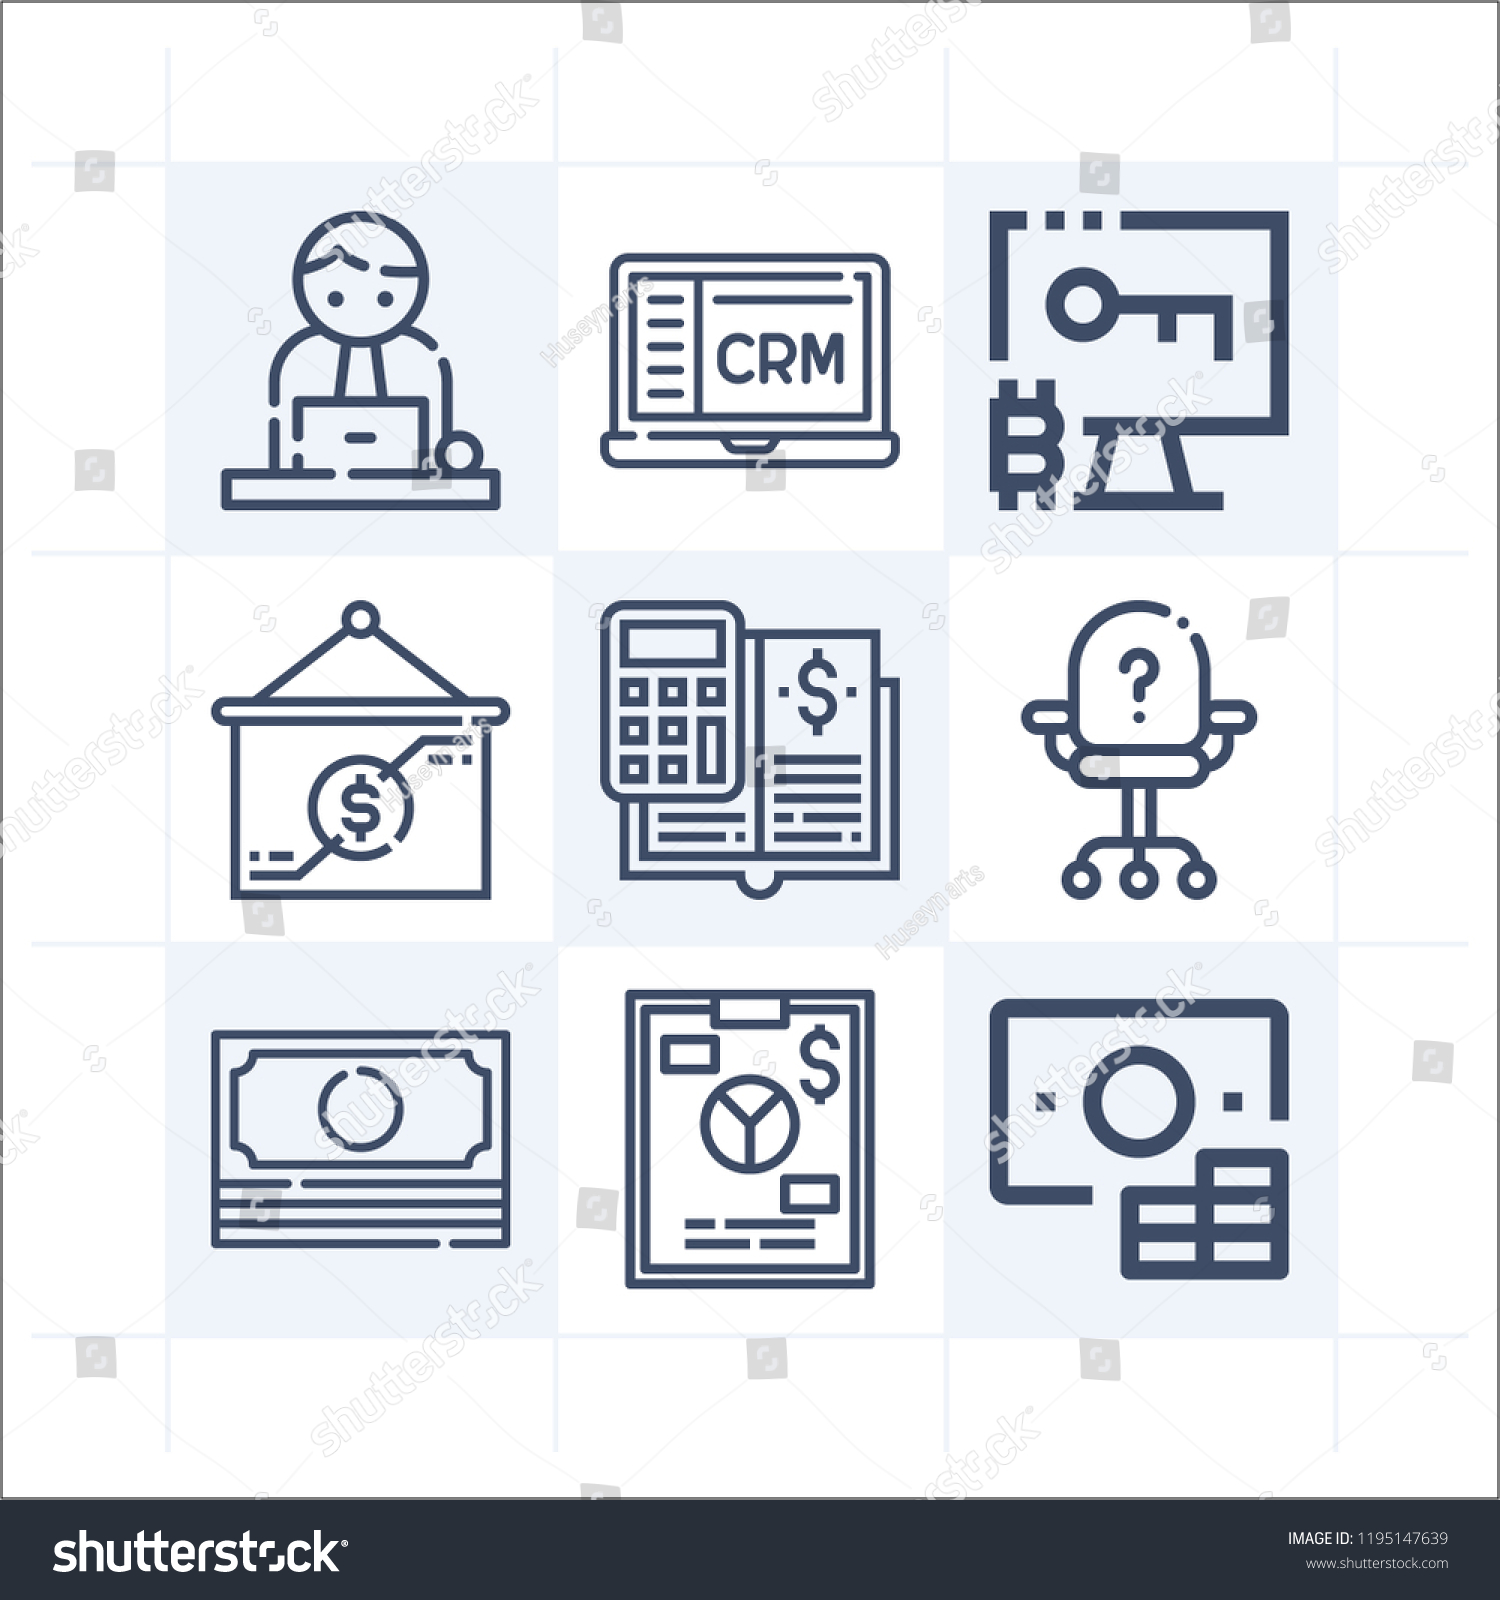 simple set 9 icons related business stock illustration 1195147639